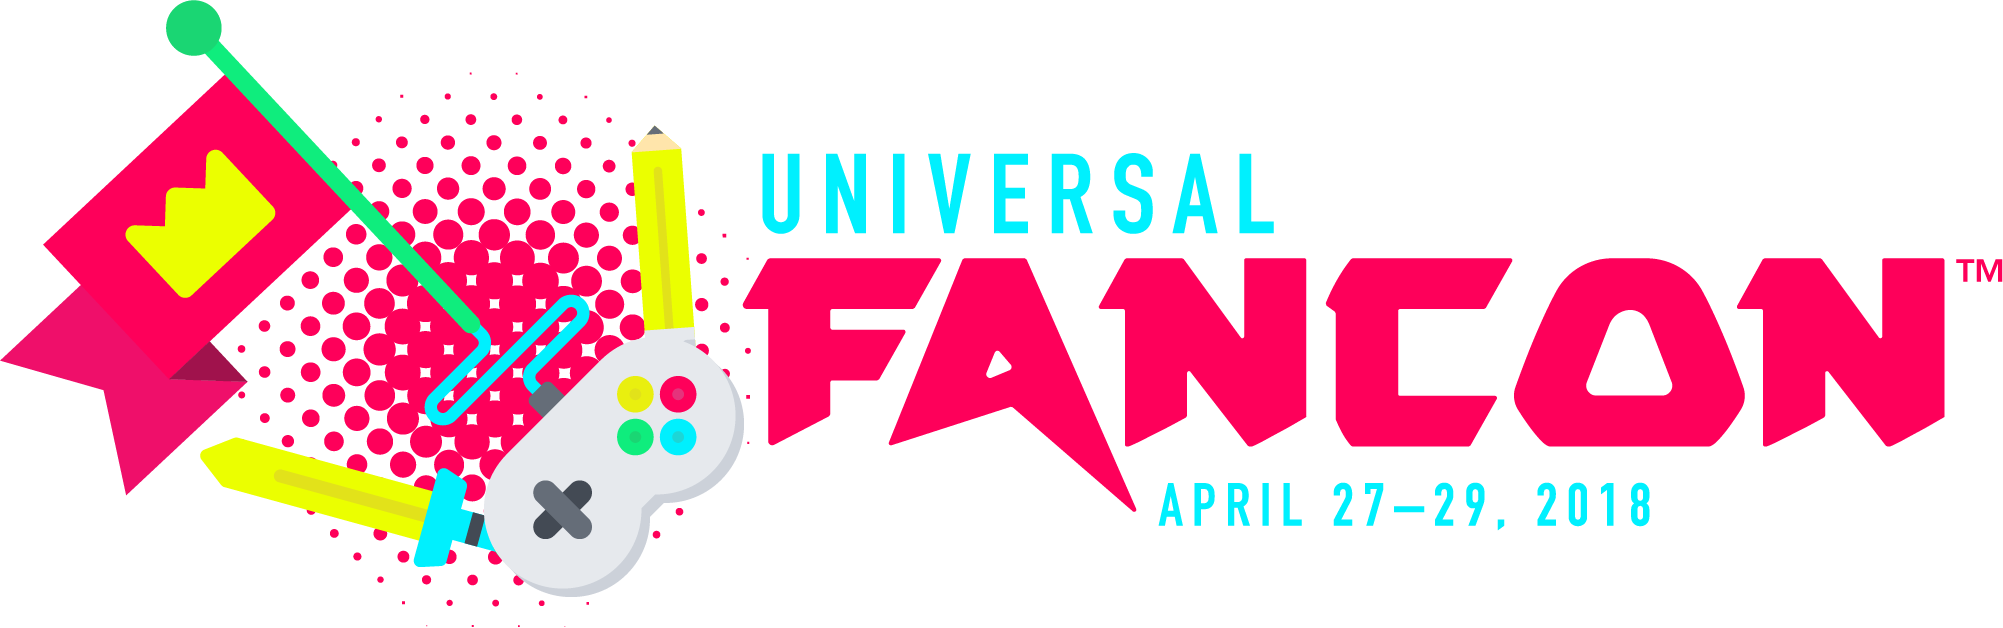 Tickets for UNIVERSAL FANCON EXHIBITOR & ARTIST REGISTRATION from ShowClix